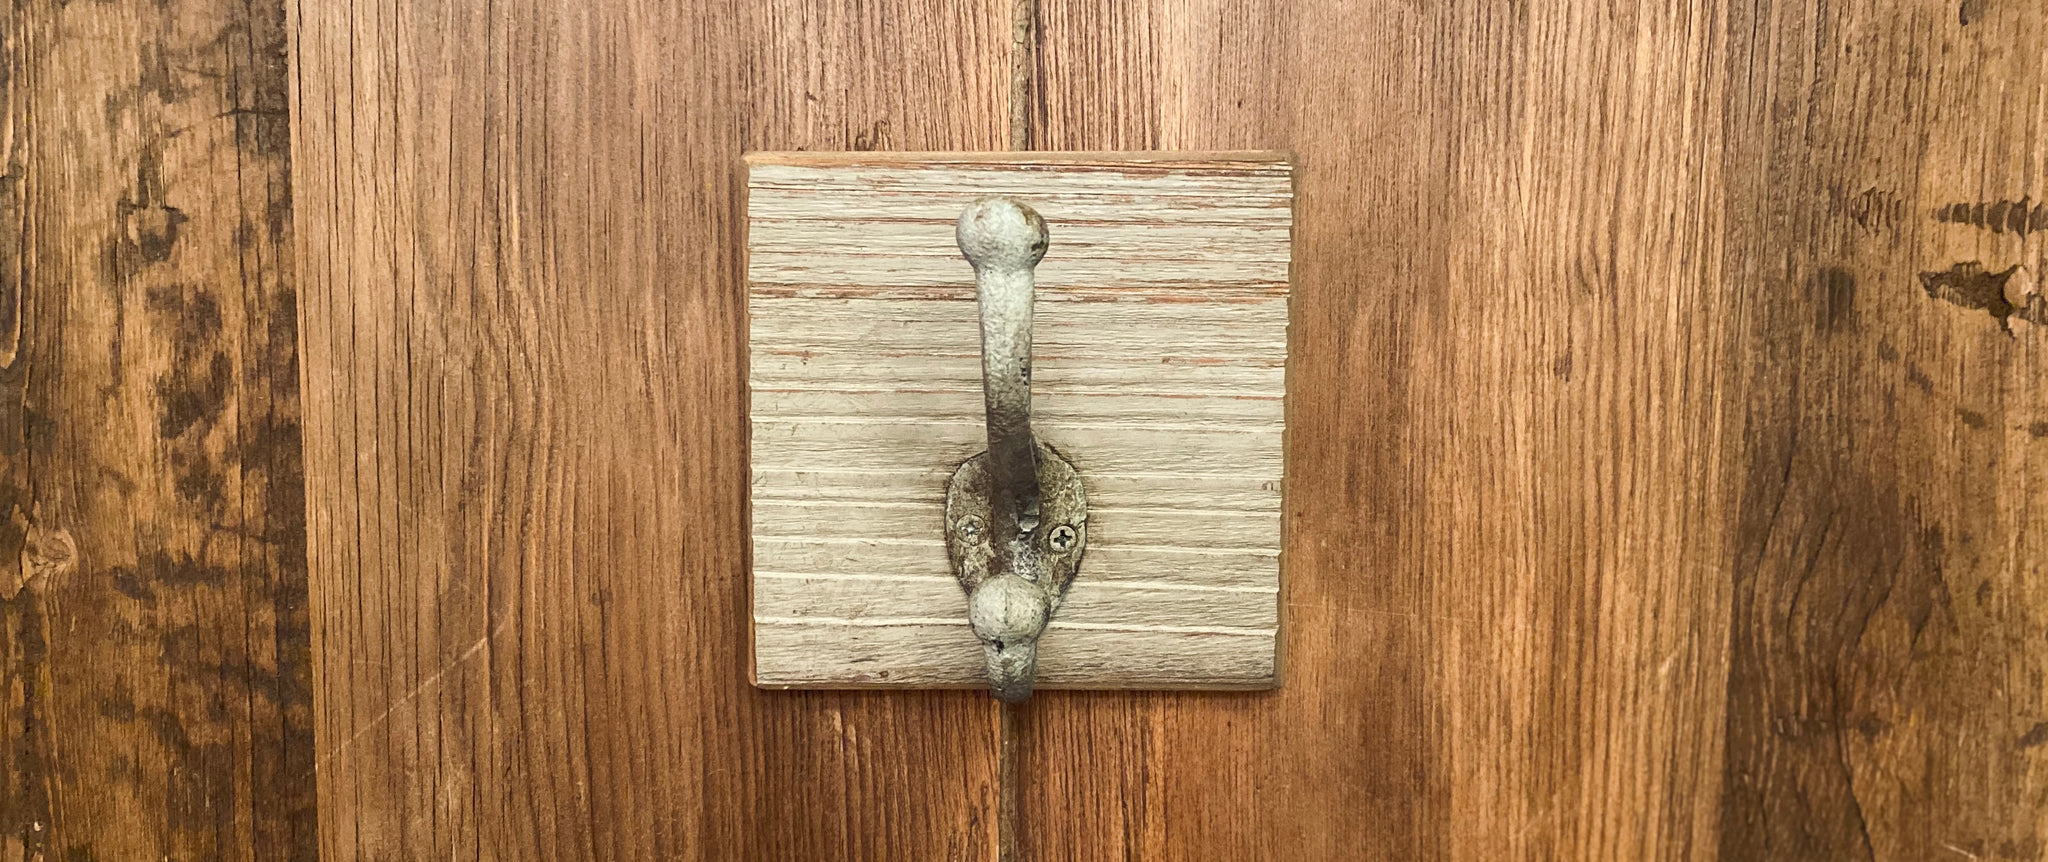 One Cast Iron Wall Hook on Reclaimed Barn Wood